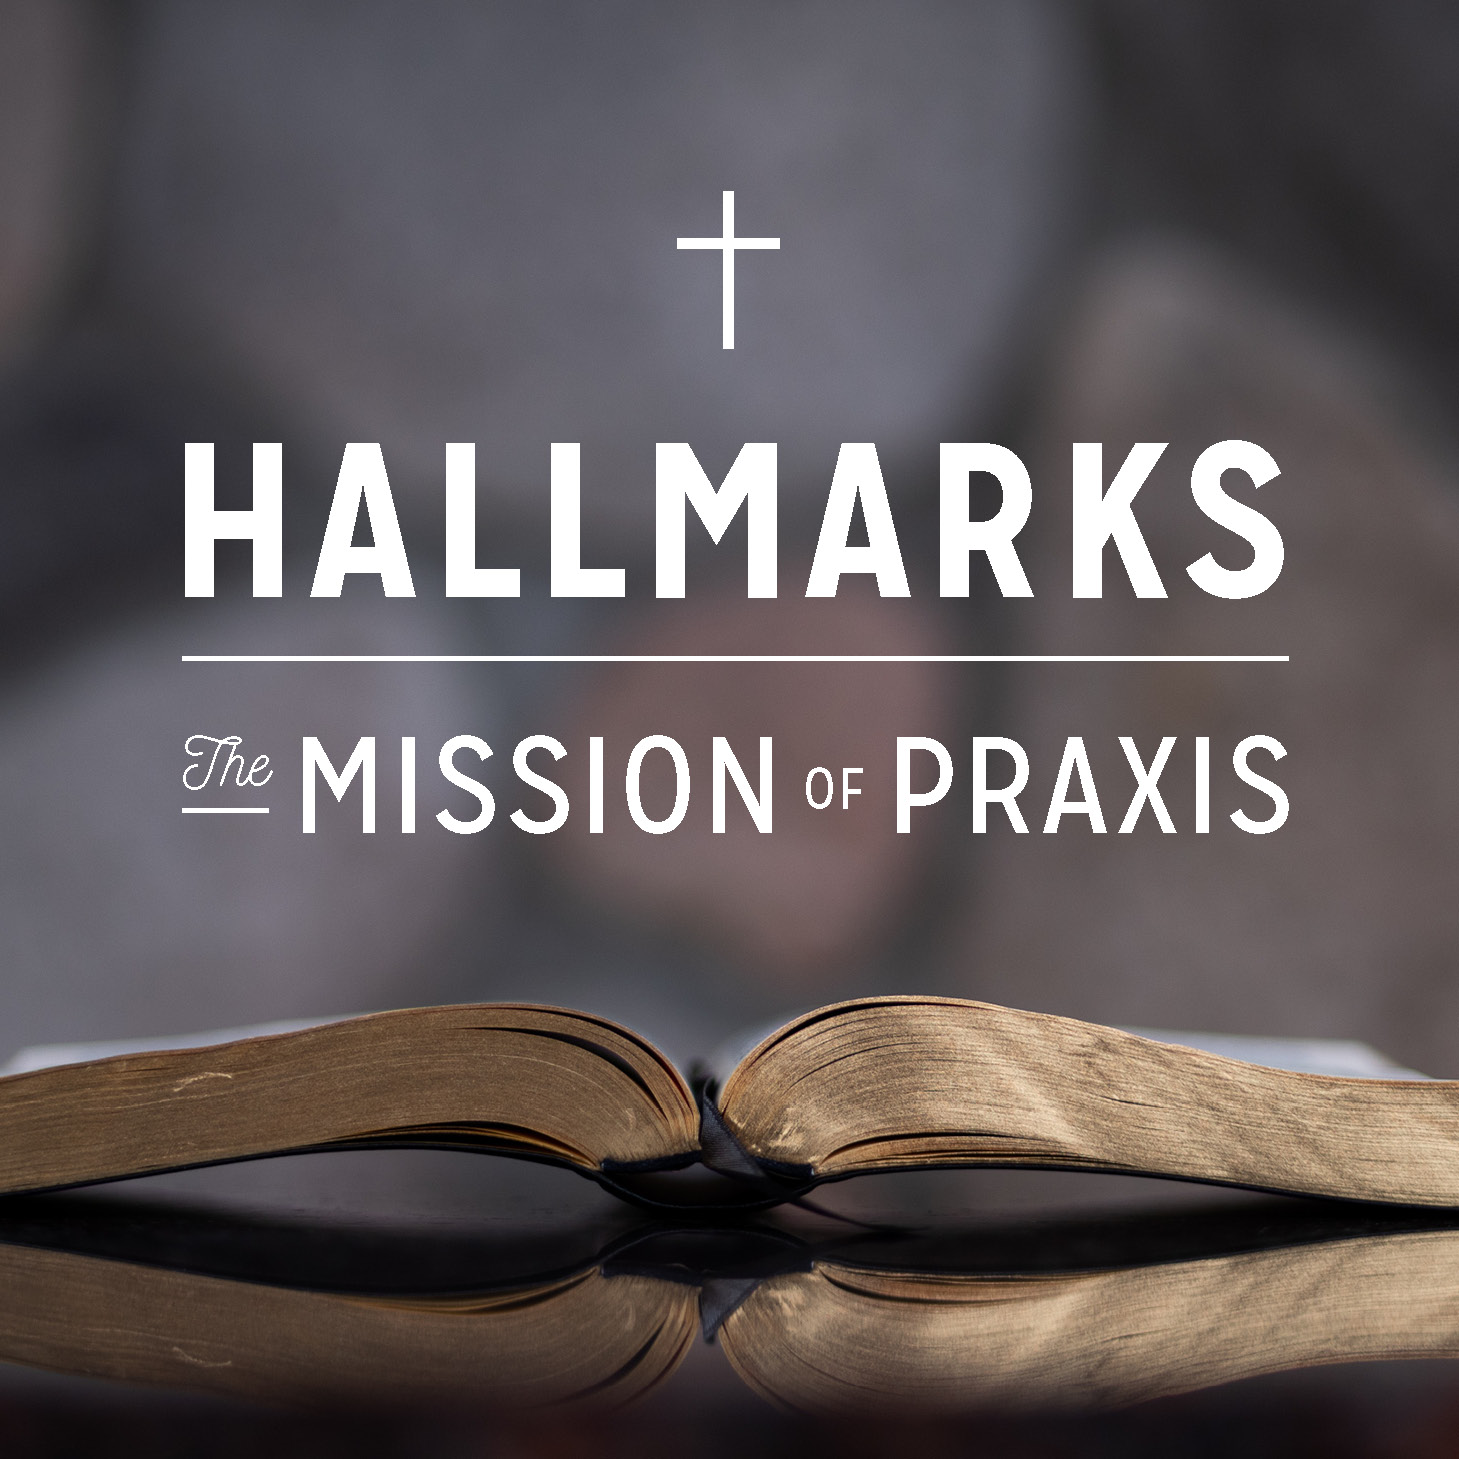 Hallmarks: Humbly Serving the Church (Philippians 2:1-11)